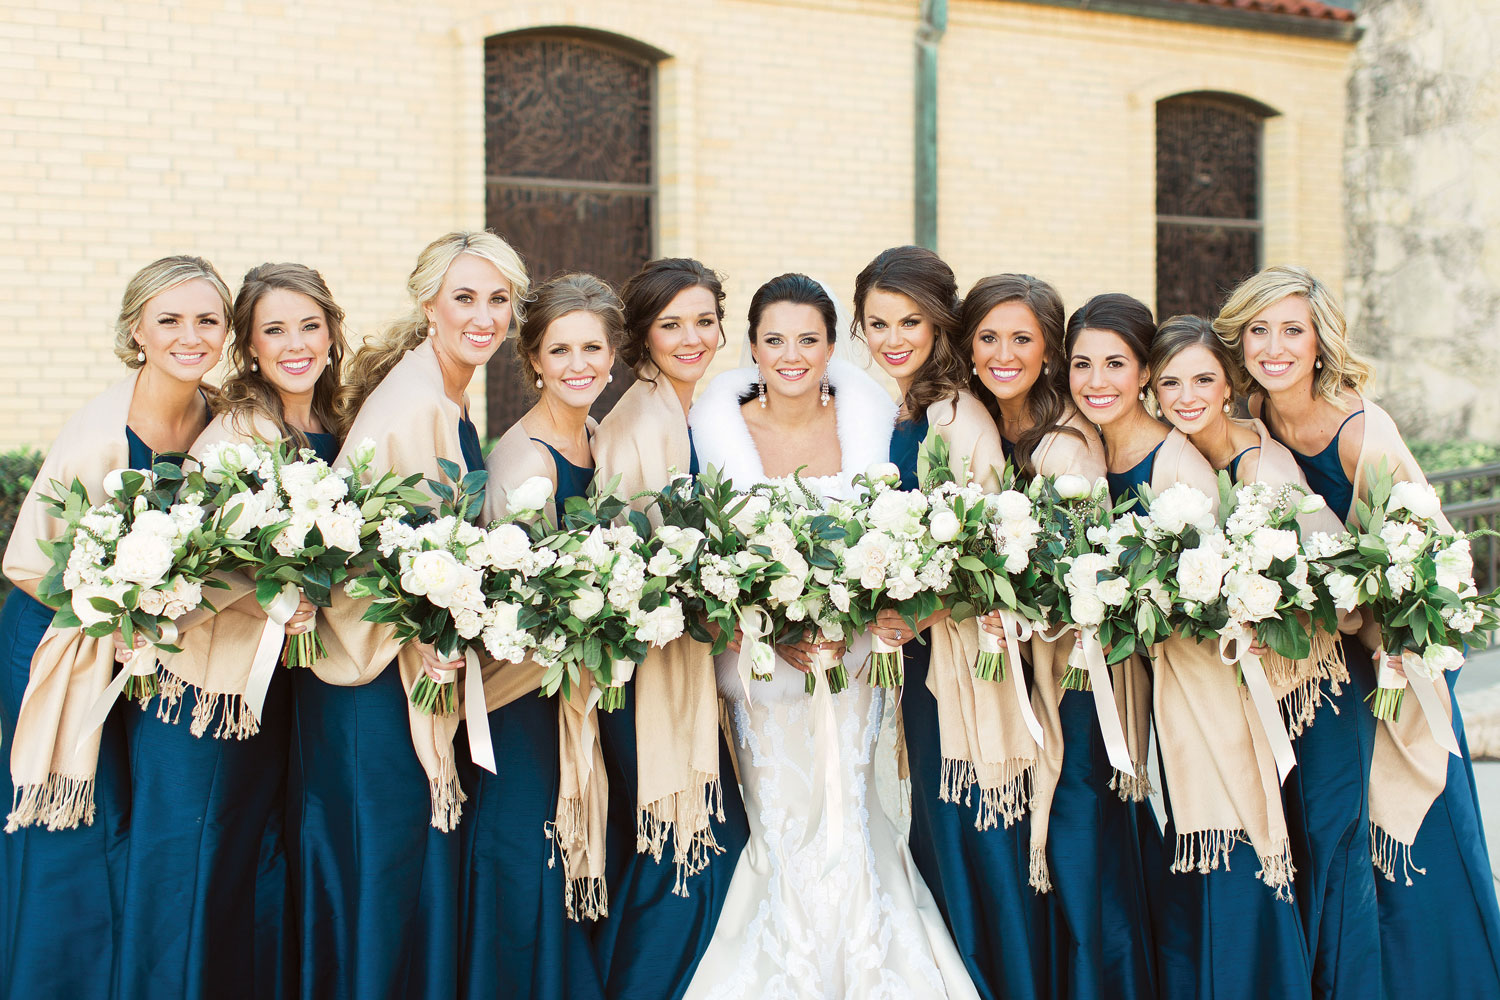 Inside Weddings winter 2018 issue preview real weddings wedding ideas winter bridesmaids